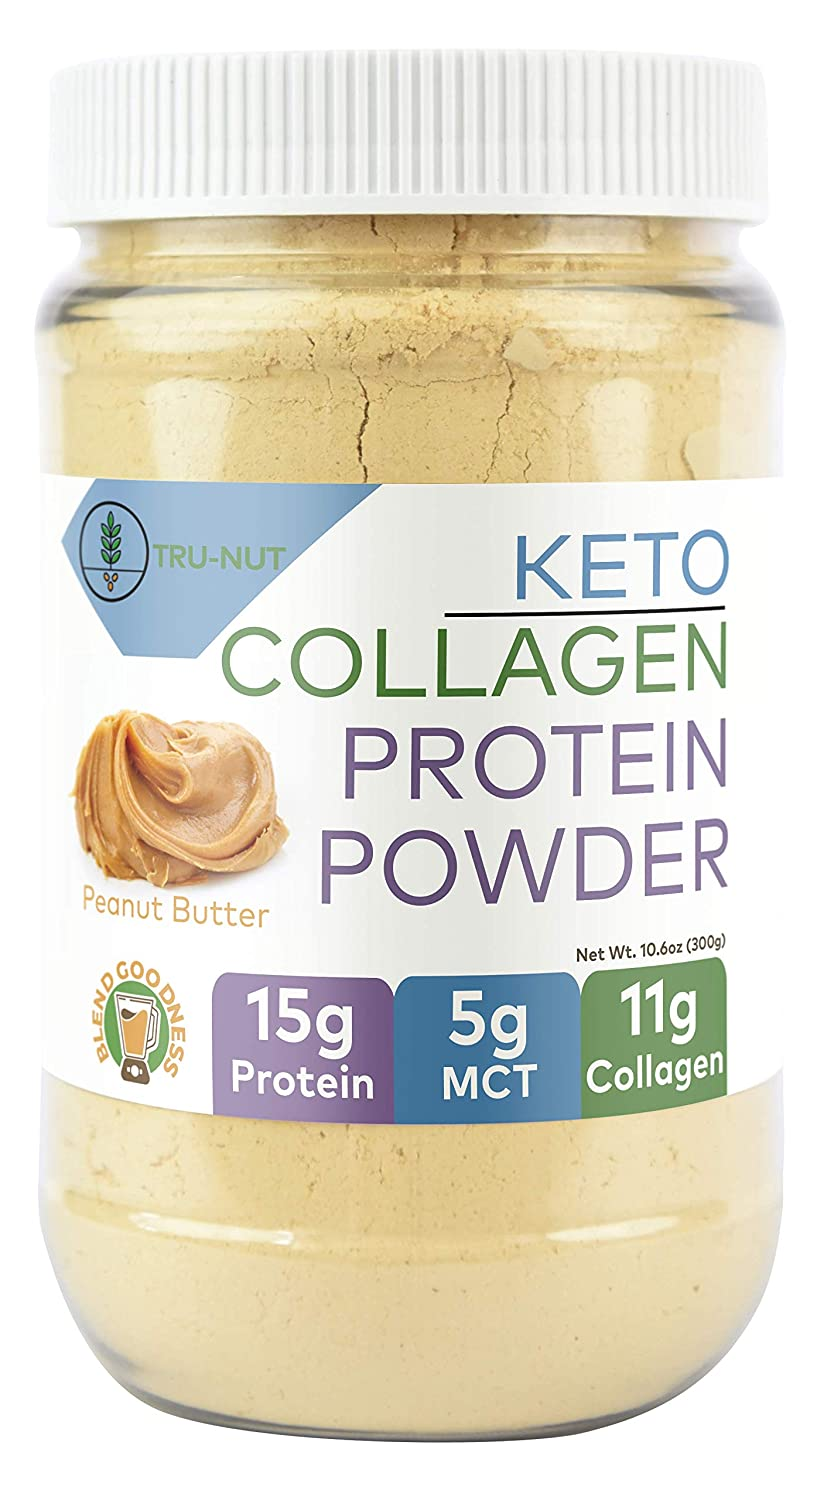 Amazon.com: Tru-Nut Keto Collagen Protein Powder (10.6oz, 12 Servings) : Low Carb Protein Blend with MCT Powder, Use for Keto Drinks and Snacks, ...